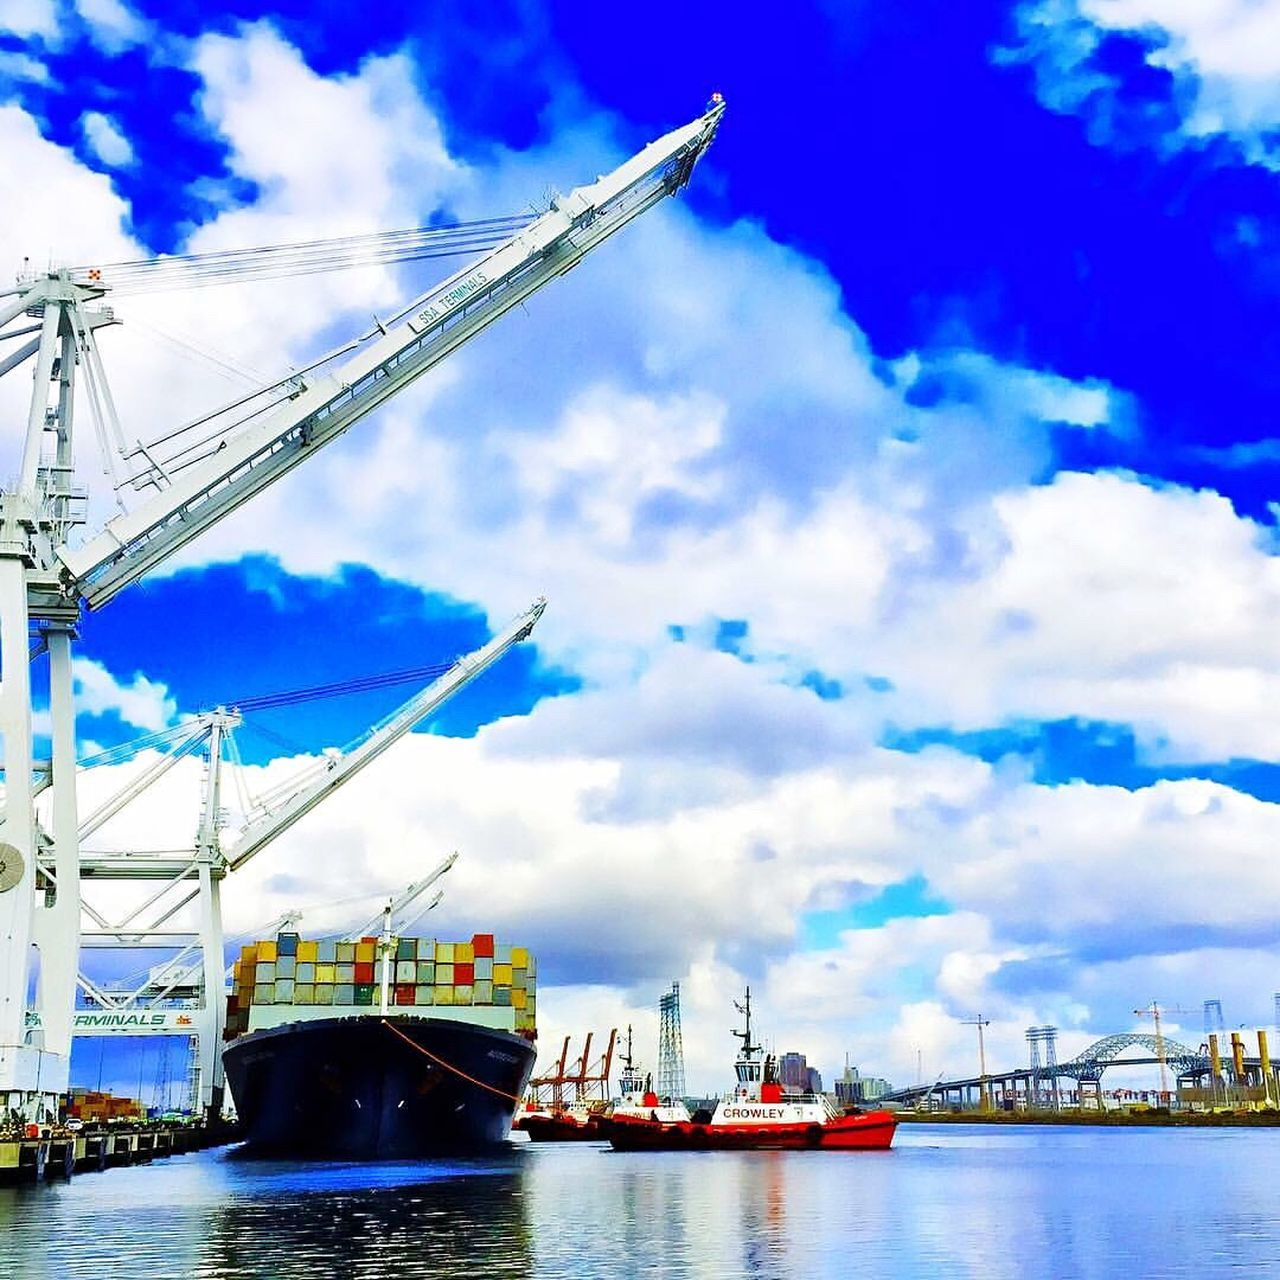 transportation, nautical vessel, sky, cloud - sky, mode of transport, water, waterfront, freight transportation, river, day, outdoors, commercial dock, crane - construction machinery, no people, shipping, harbor, built structure, moored, cargo container, architecture, nature, industry, sailing, beauty in nature, shipyard